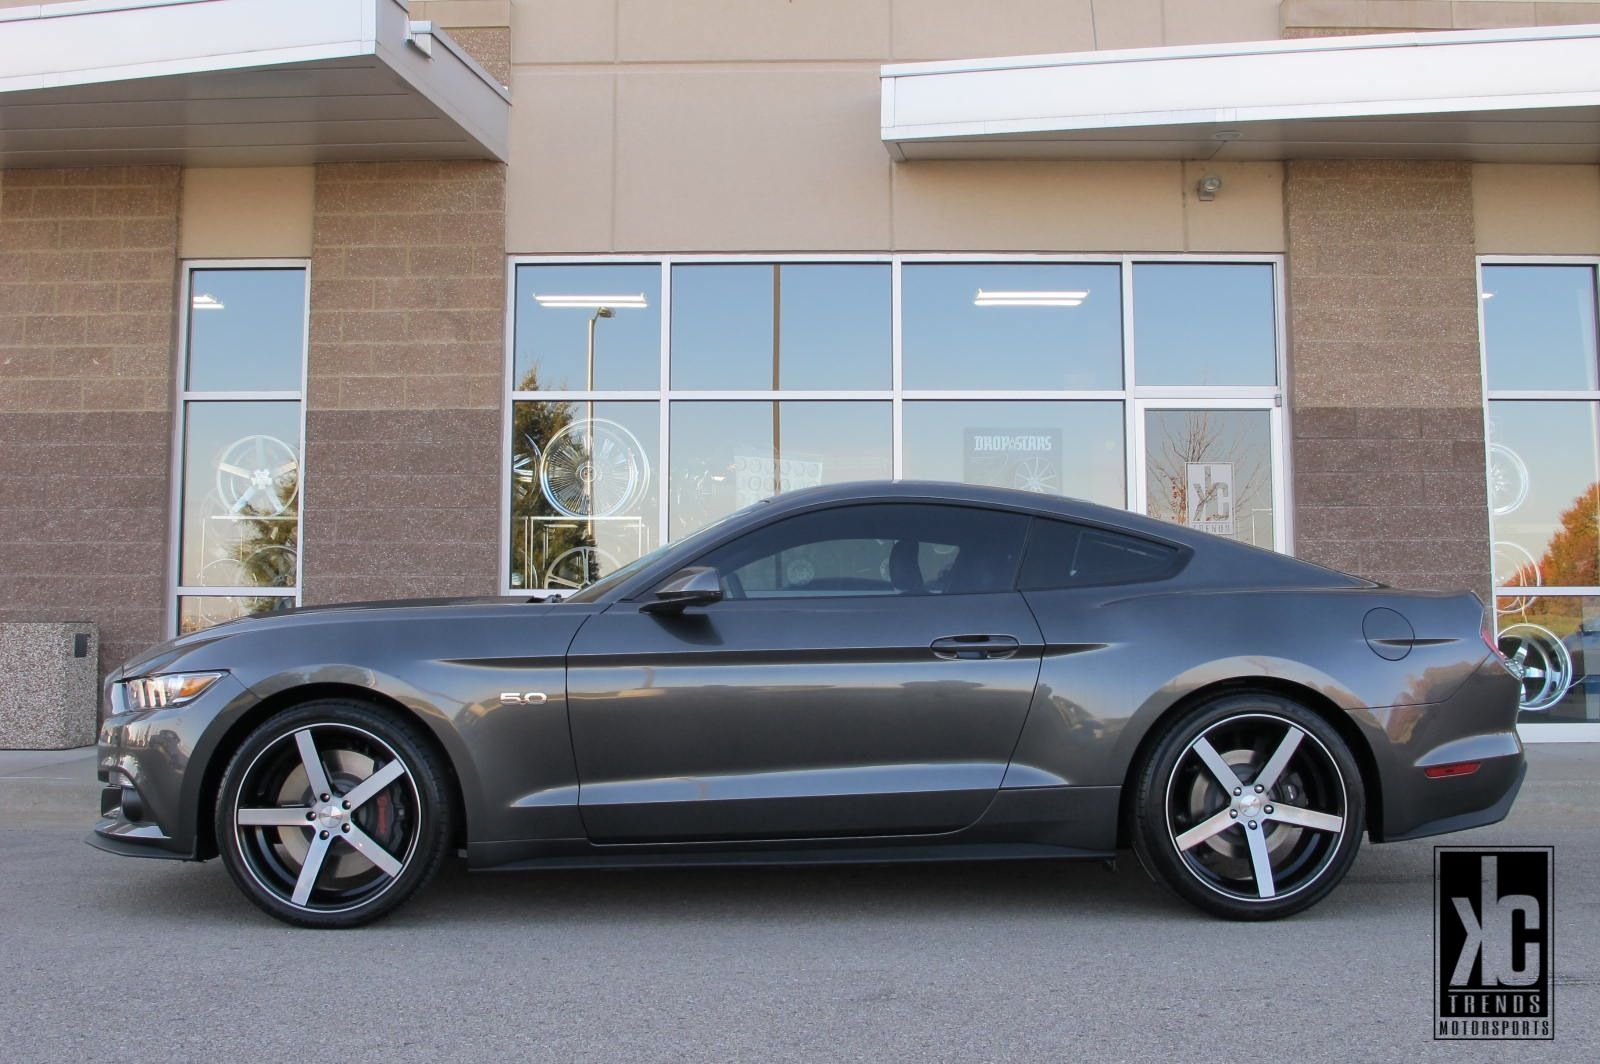 Rovos Durban Brushed Black Wheels In 20x8 5 20x10 0 Mounted With Toyo Proxes 4 Plus Tires Kc Trends Window Tint And Black Wheels 2015 Mustang Gt 2015 Mustang